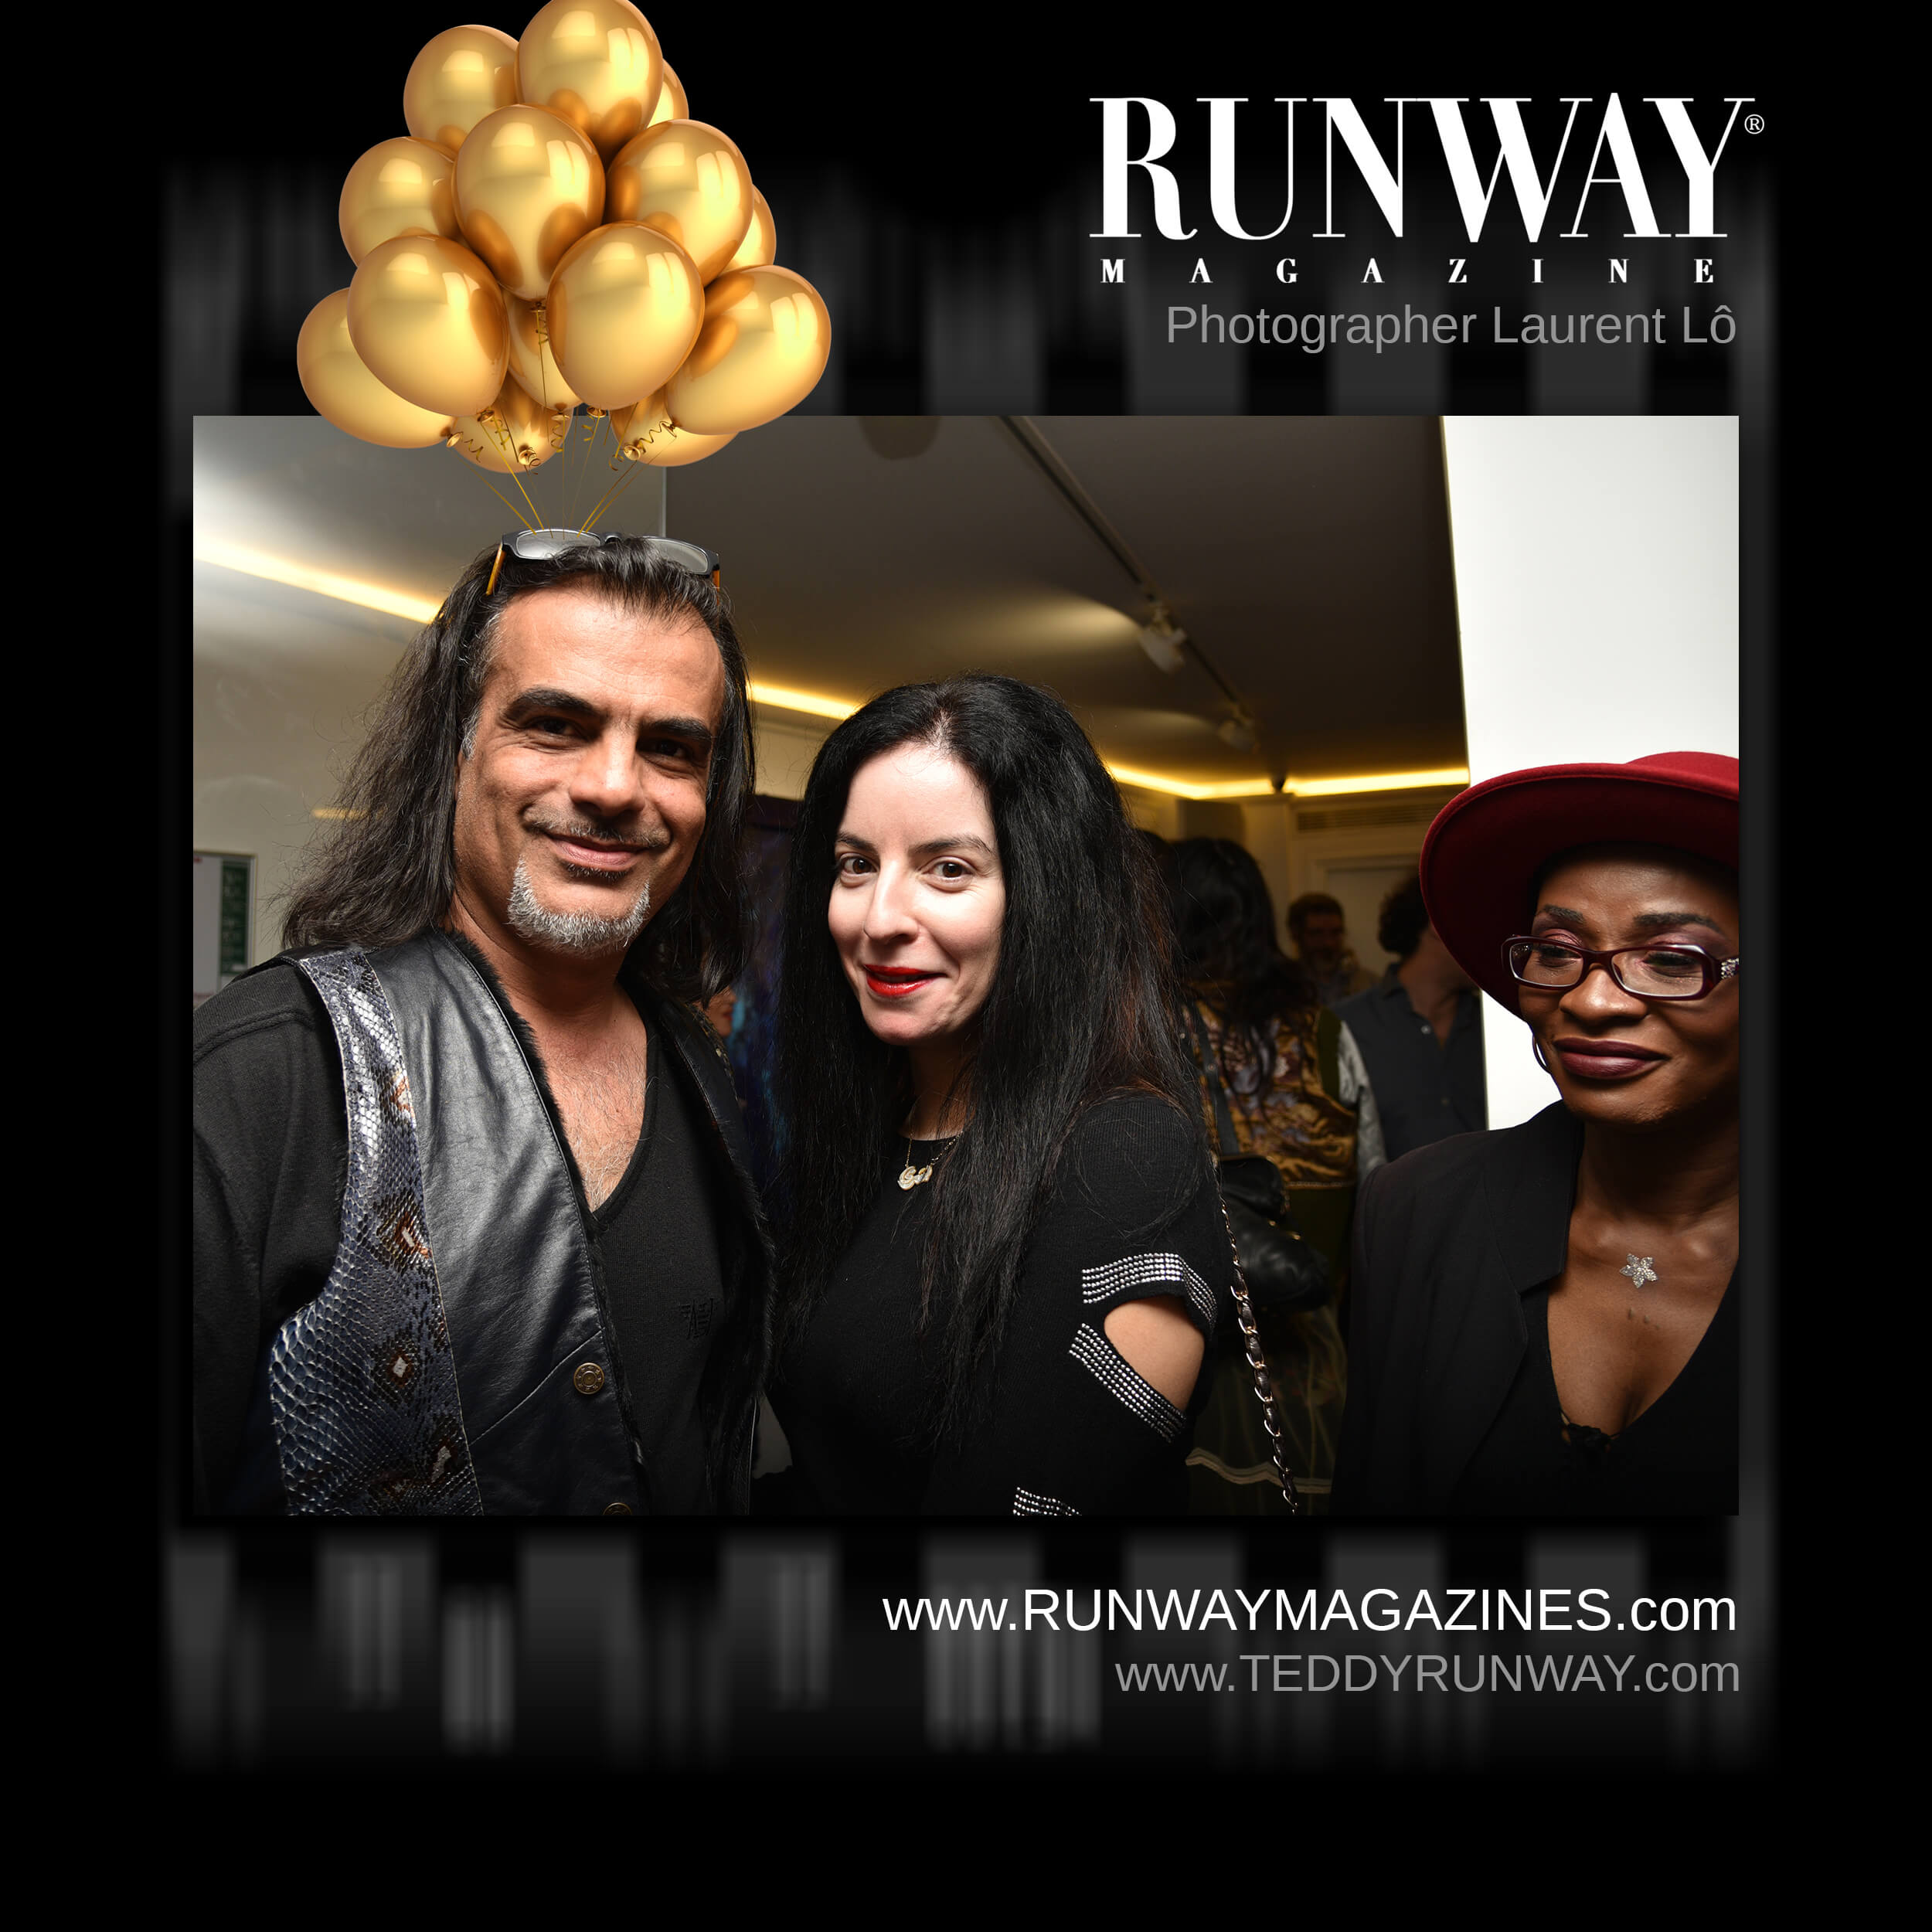 Teddy Runway Magazine Official Party. Runway Magazine Official Party